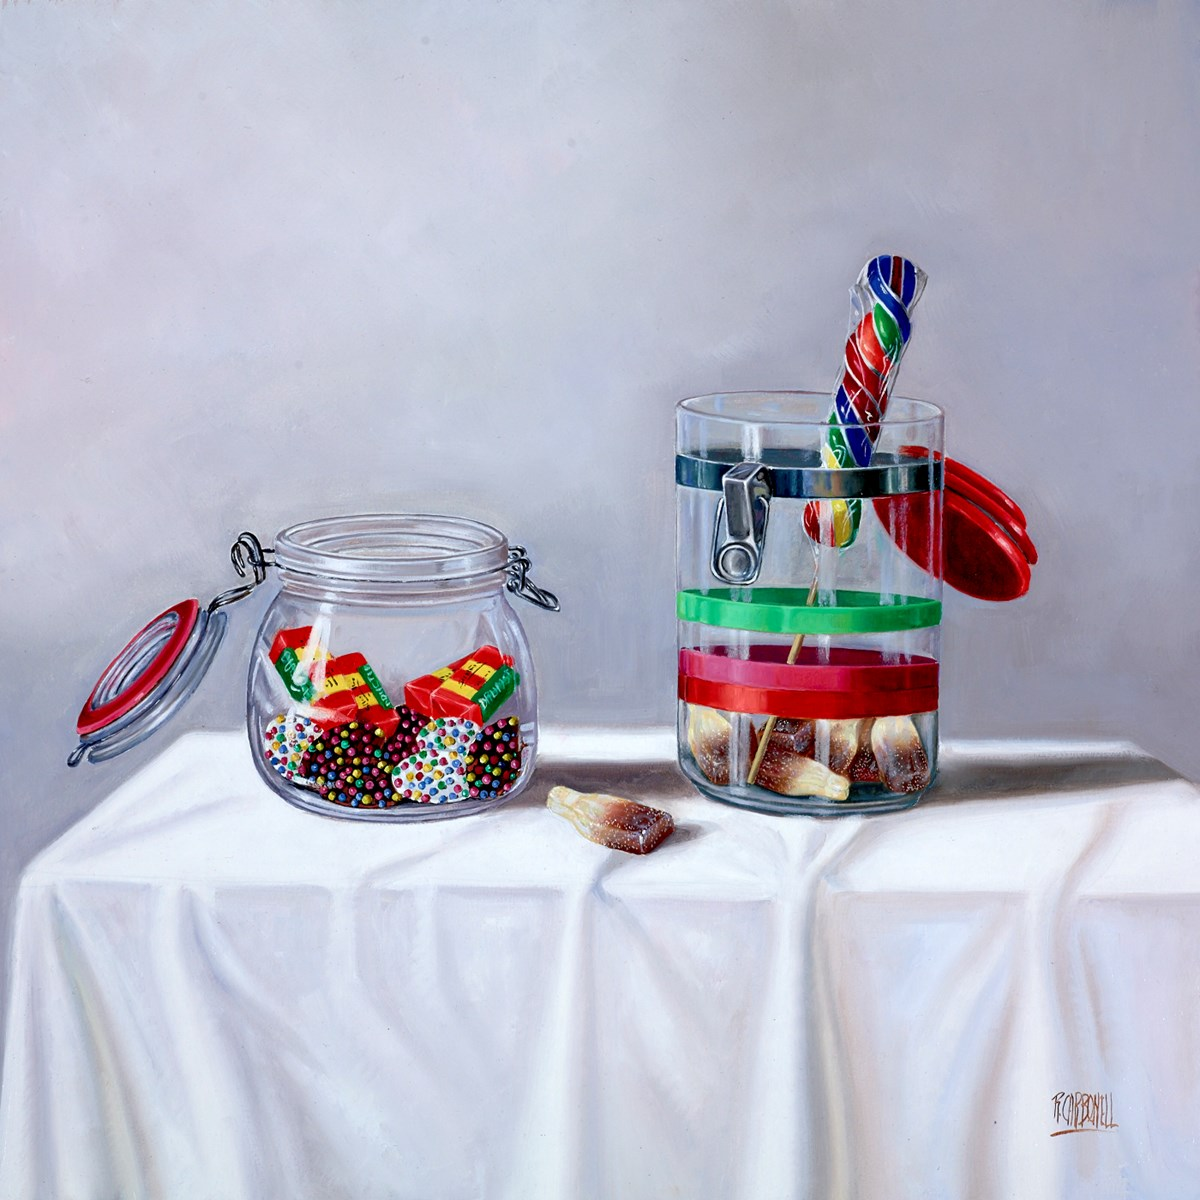 El Piruli II by raquel carbonell -  sized 20x20 inches. Available from Whitewall Galleries